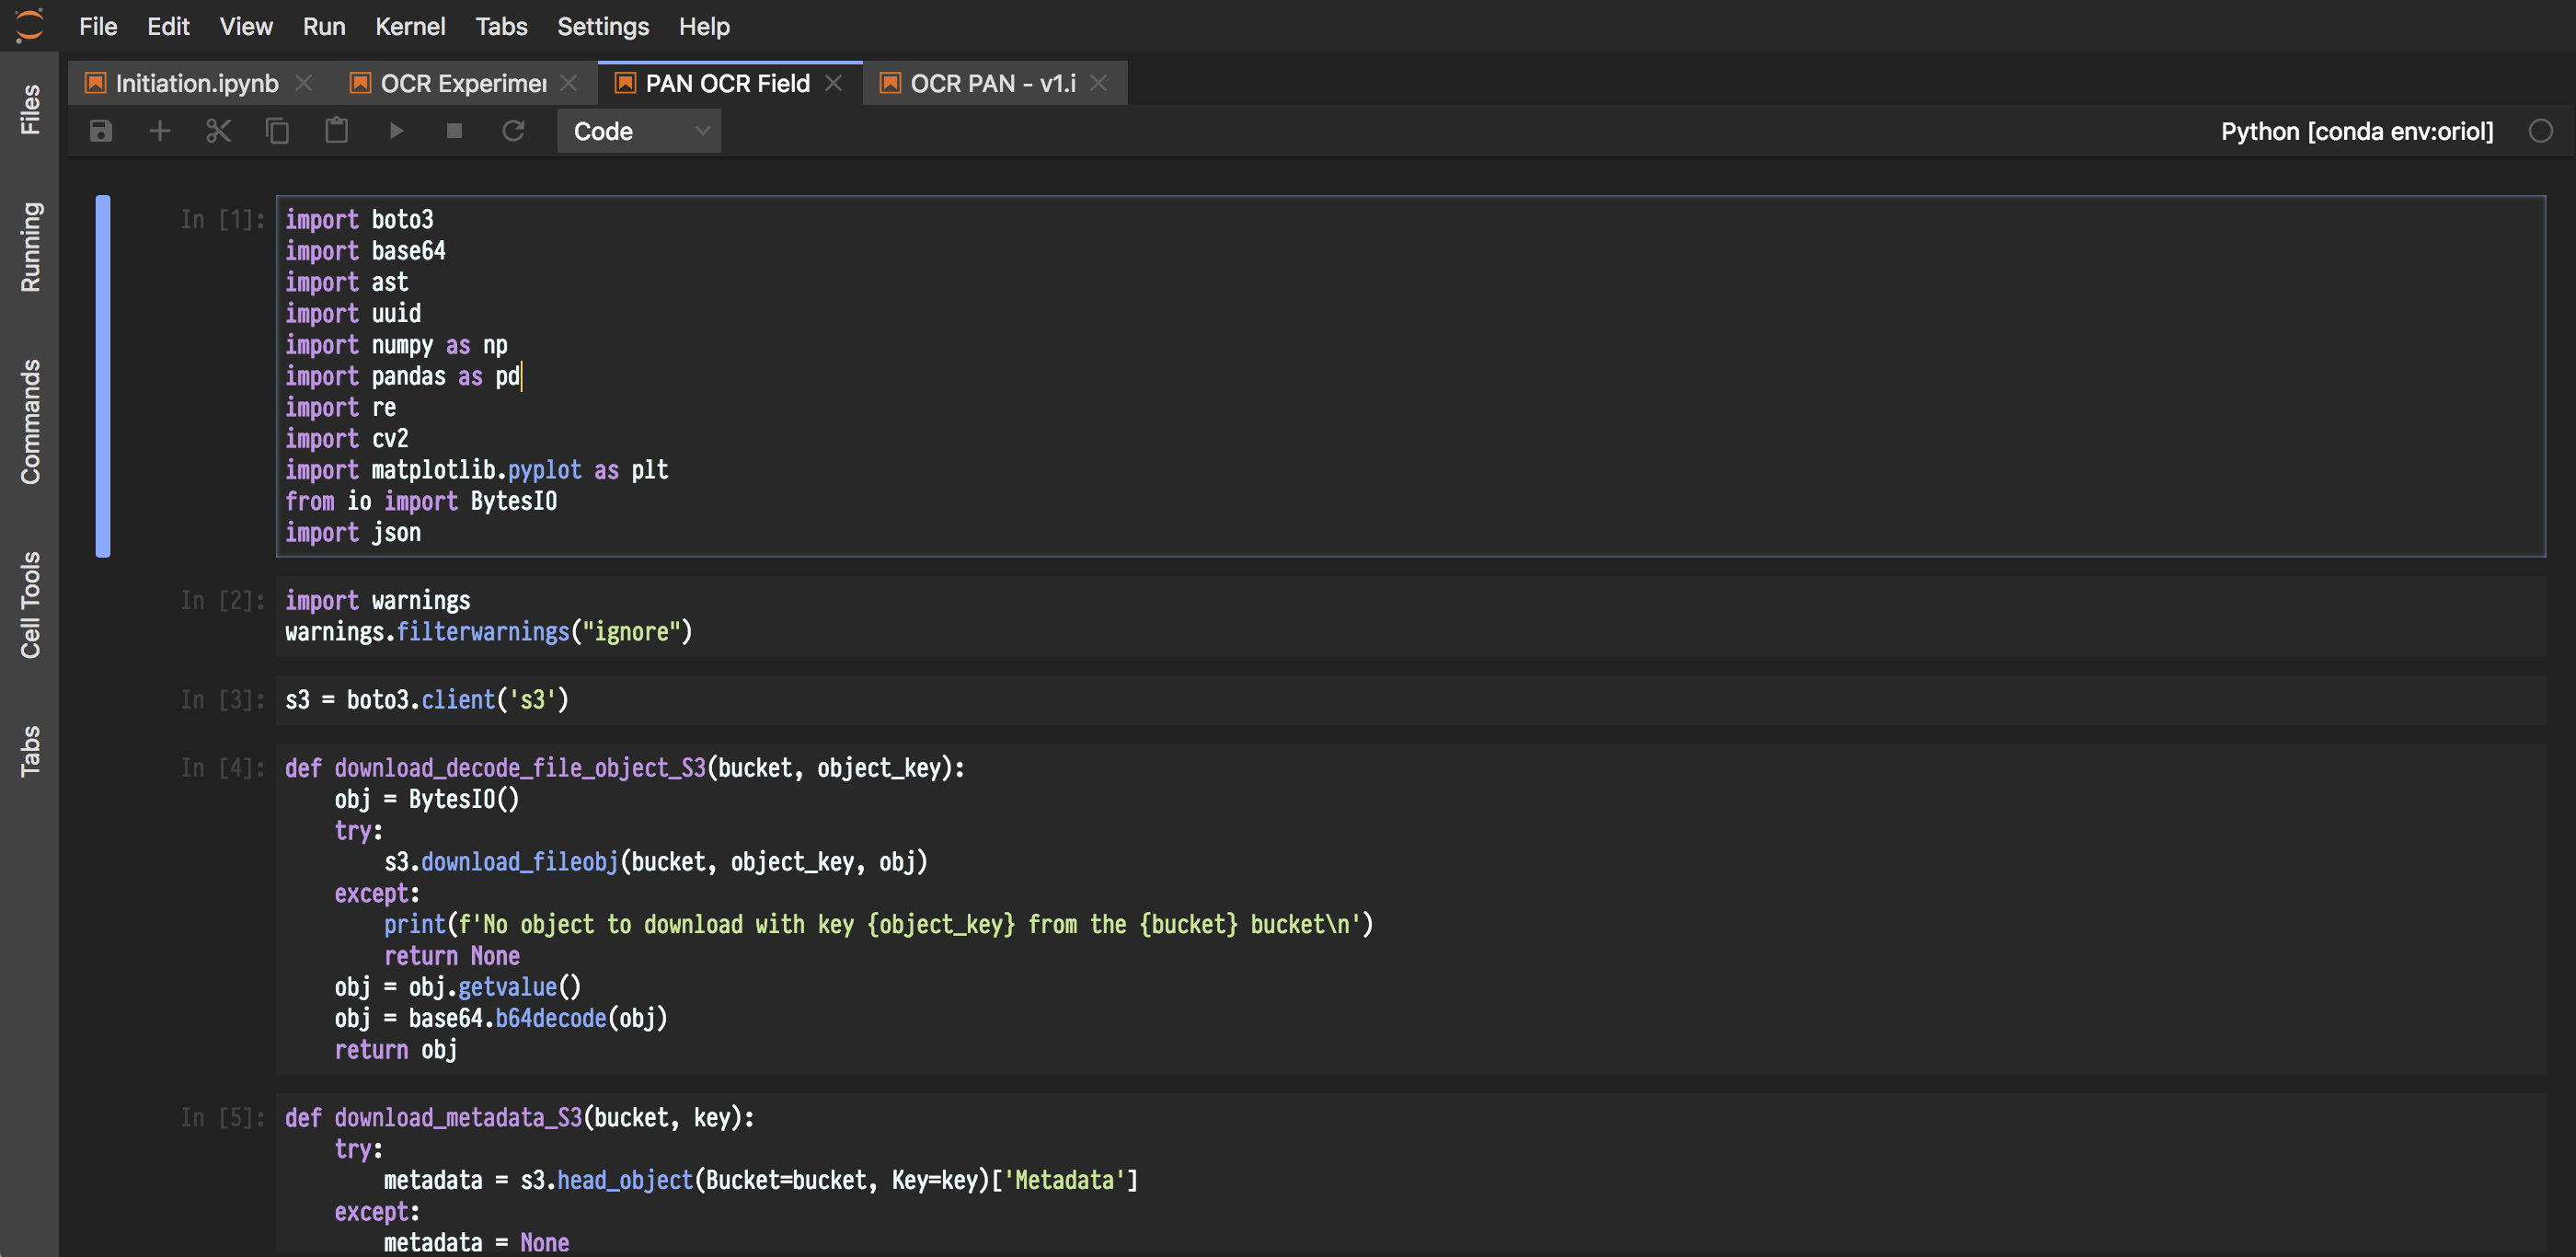 The Material Darker theme on JupyterLab